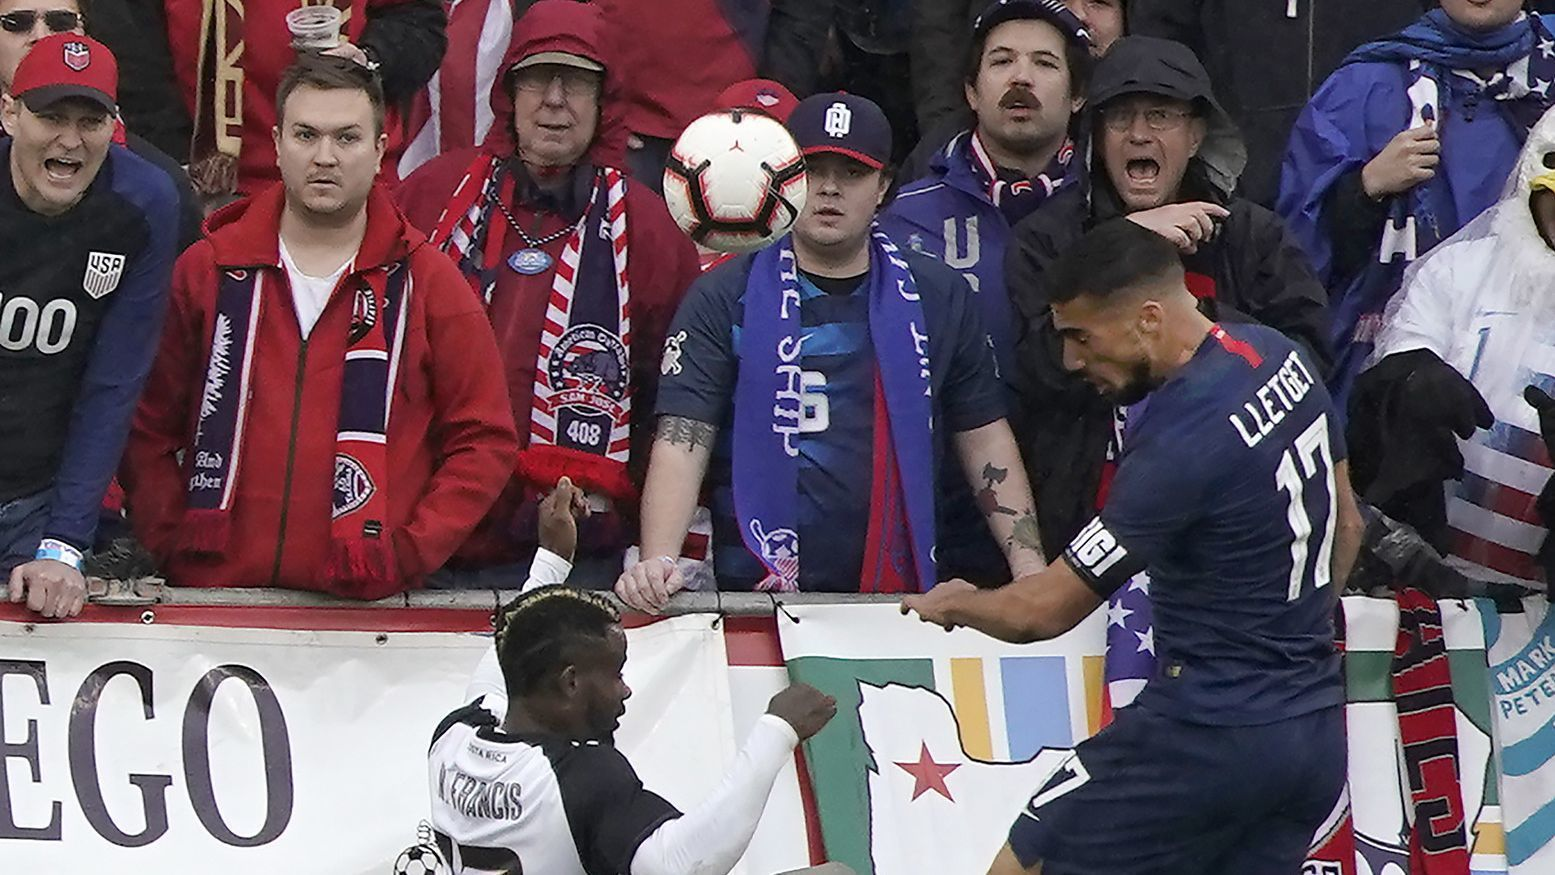 Tears of joy for Sebastian Lletget after leading U.S. to victory over Costa Rica